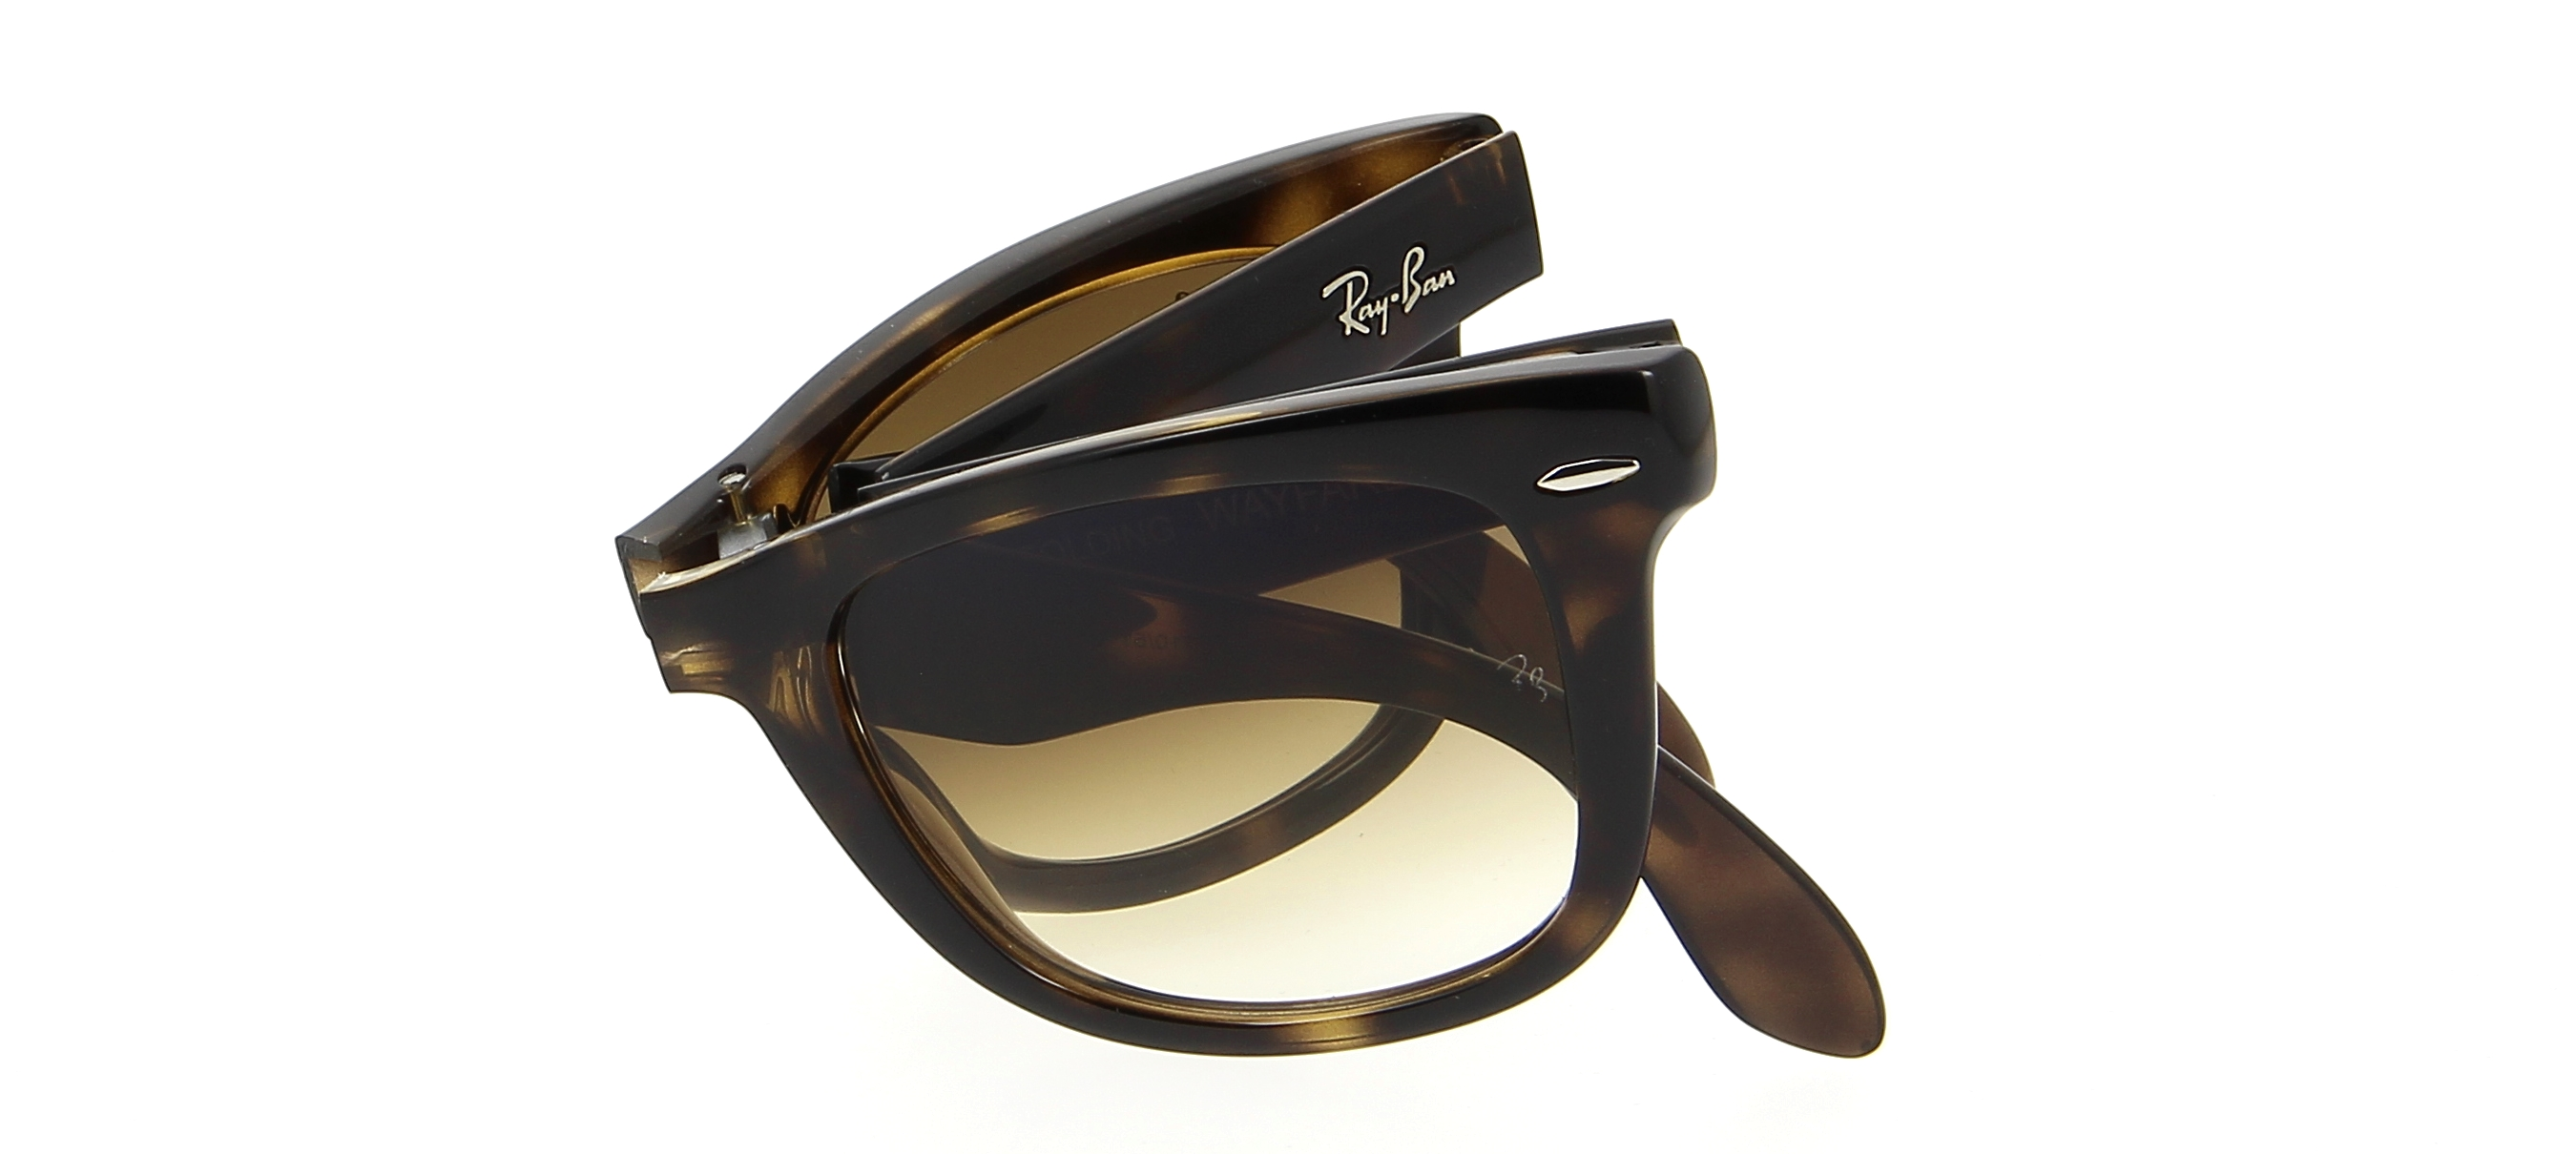 ray ban pas cher optical center  ray ban clubmaster pas cher optical center